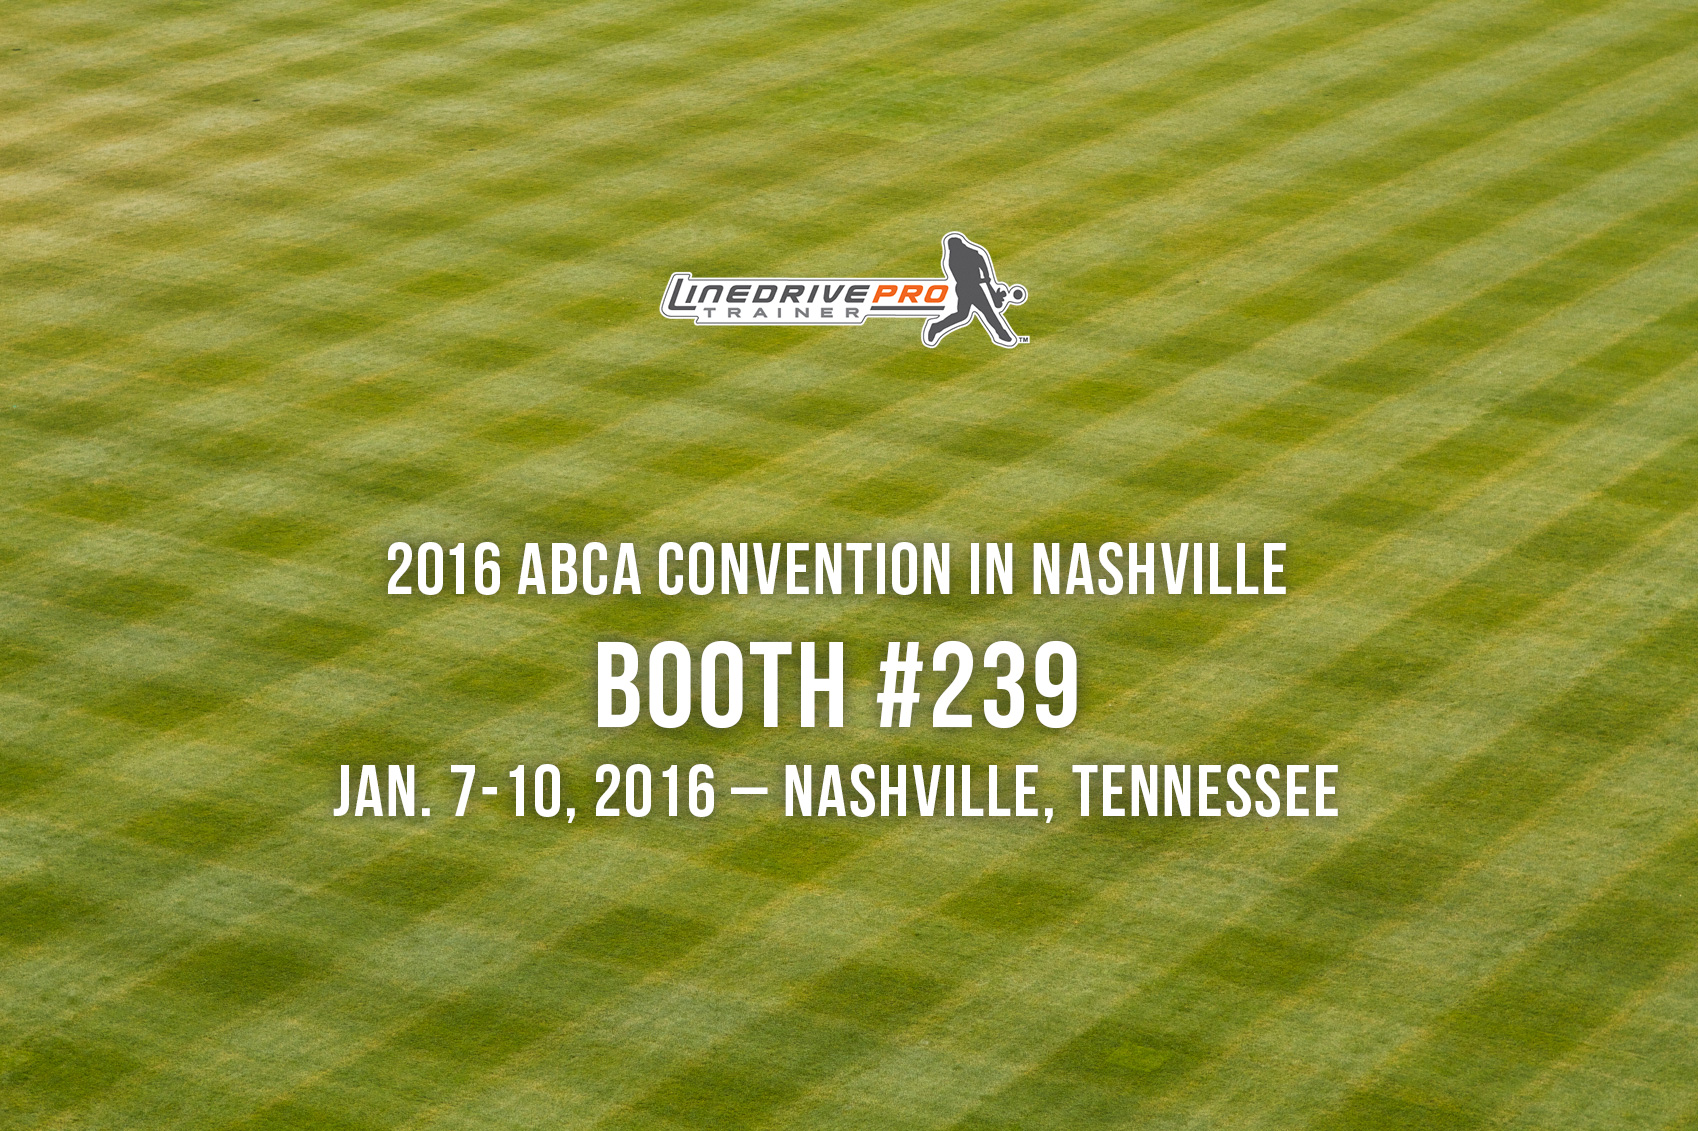 LineDrivePro At The 2016 ABCA Convention In Nashville